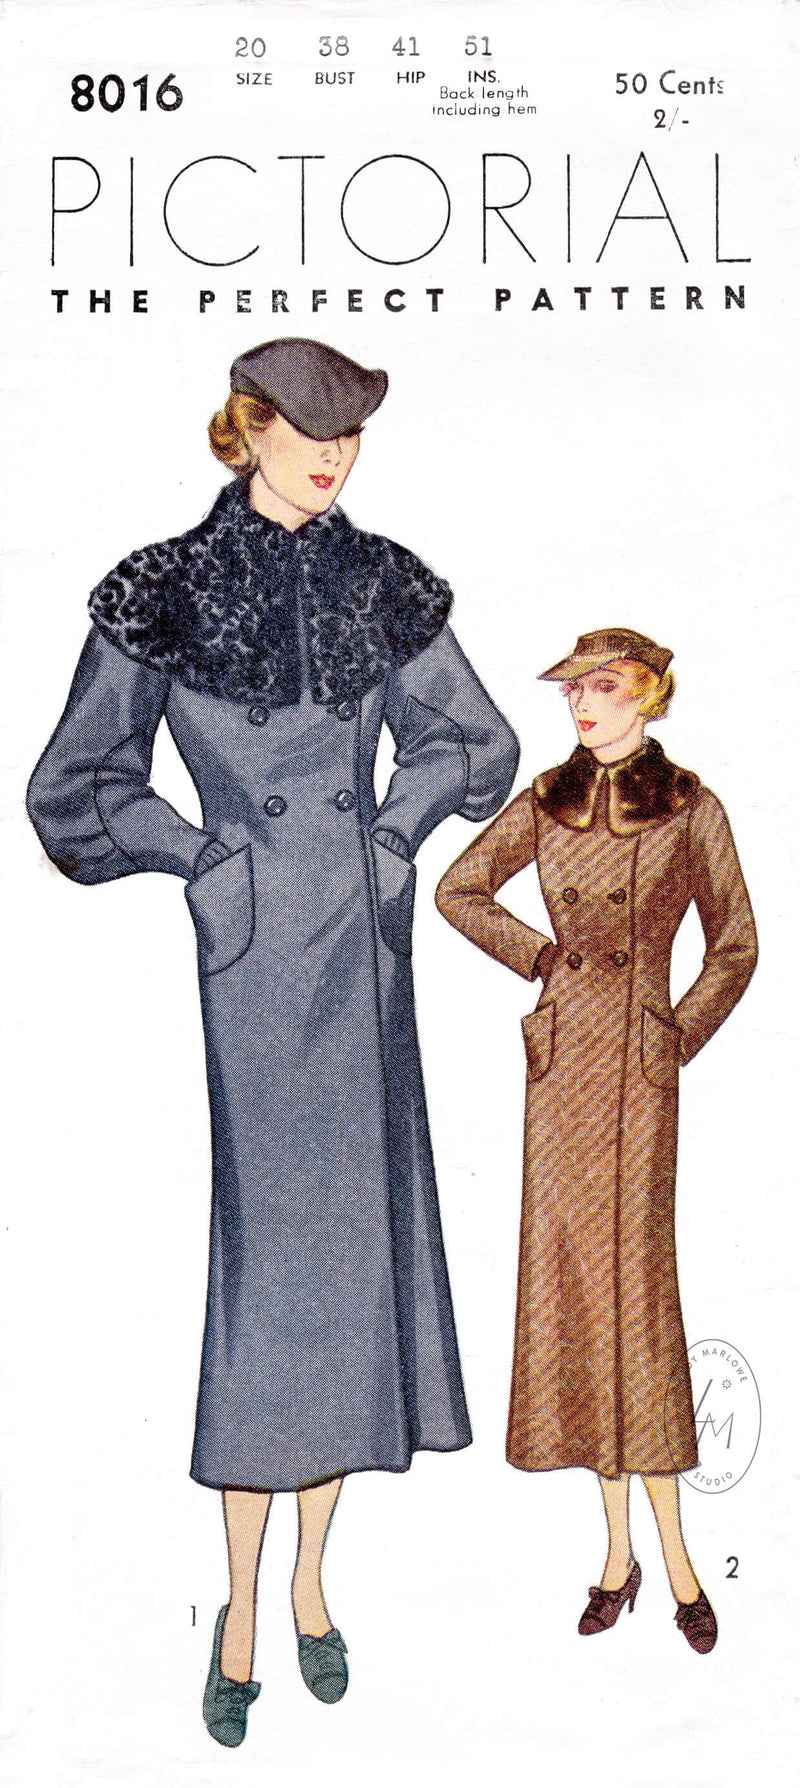 Pictorial Review 8016 1930s 1920s vintages coat sewing pattern